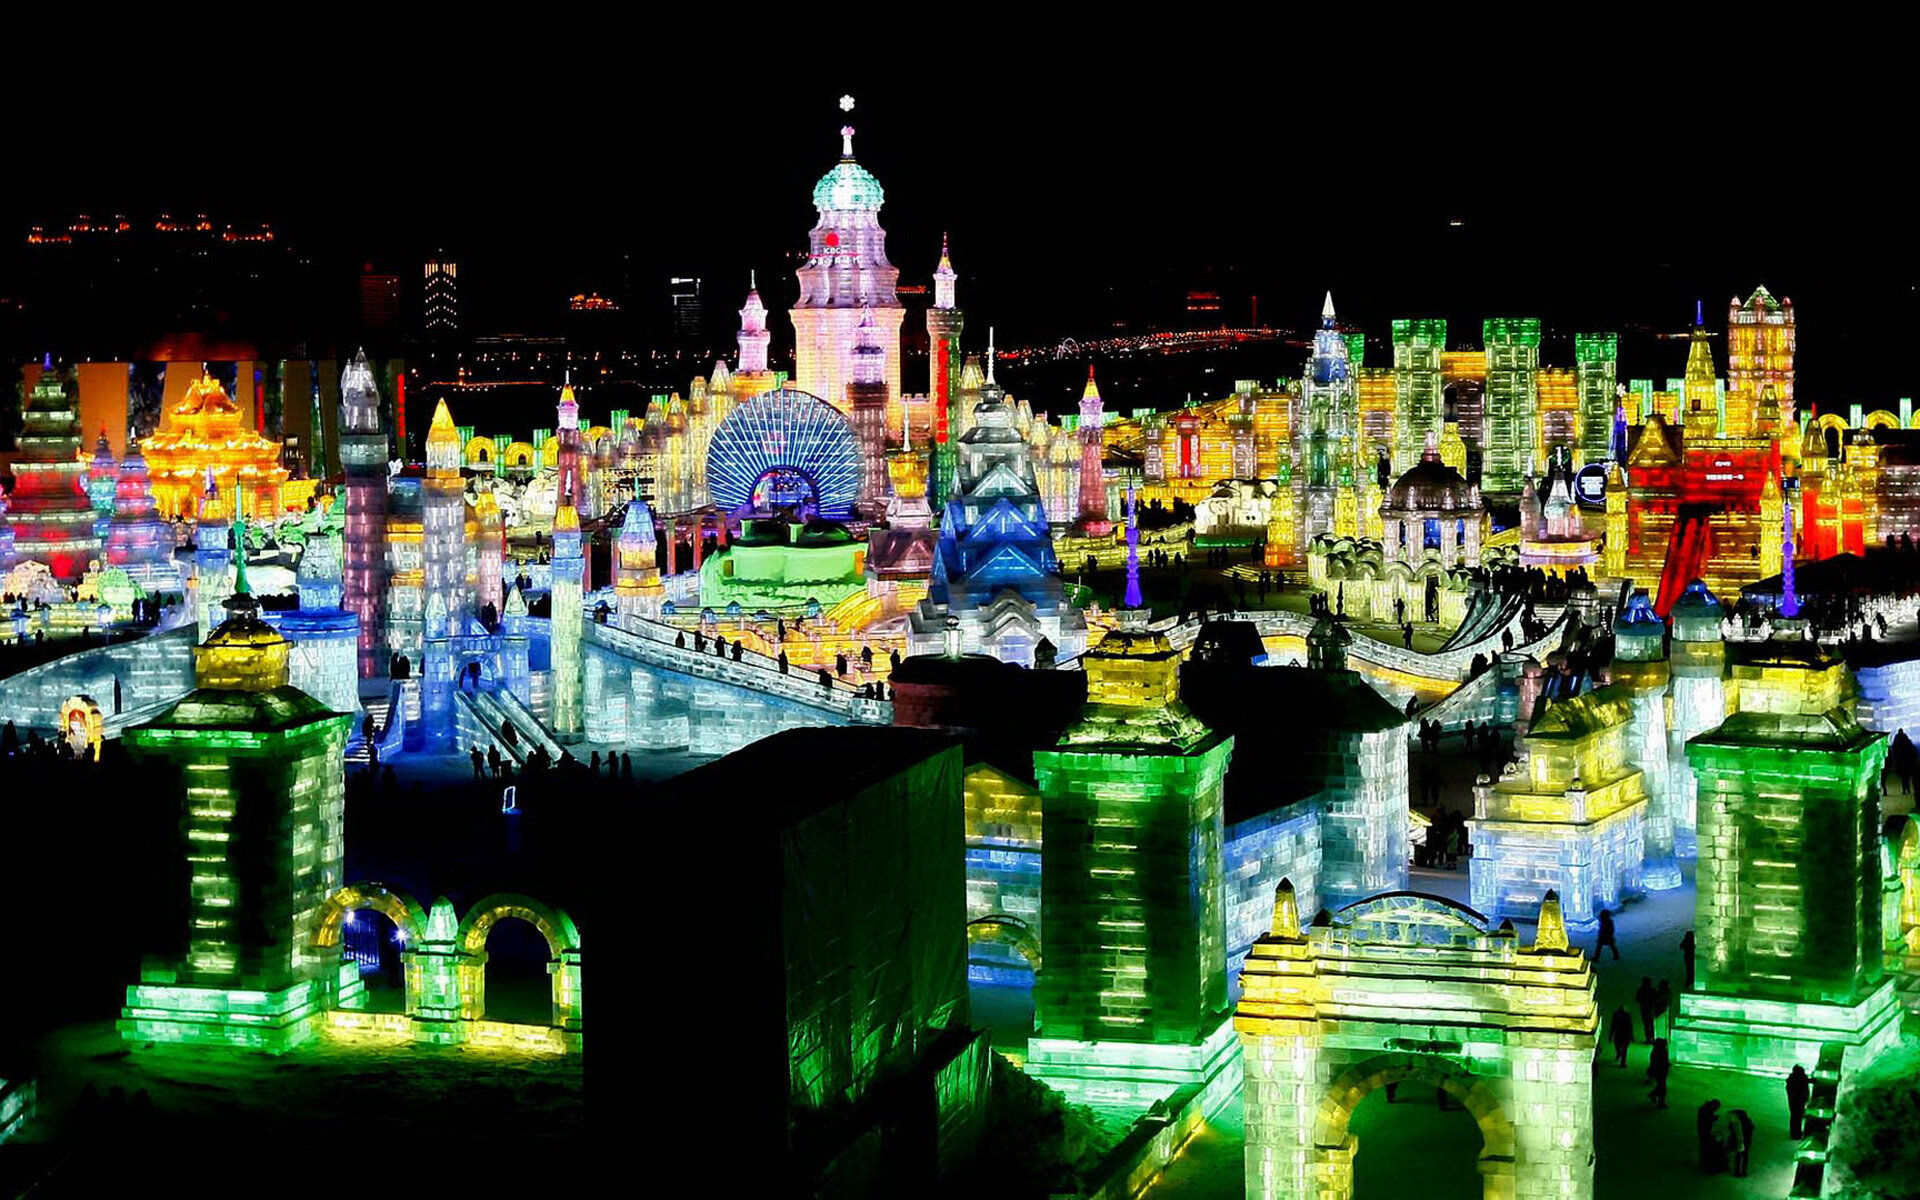 Visitors view ice sculptures at the 29th Harbin International Ice and Snow Festival on January 5, 2013. (Associated Press)